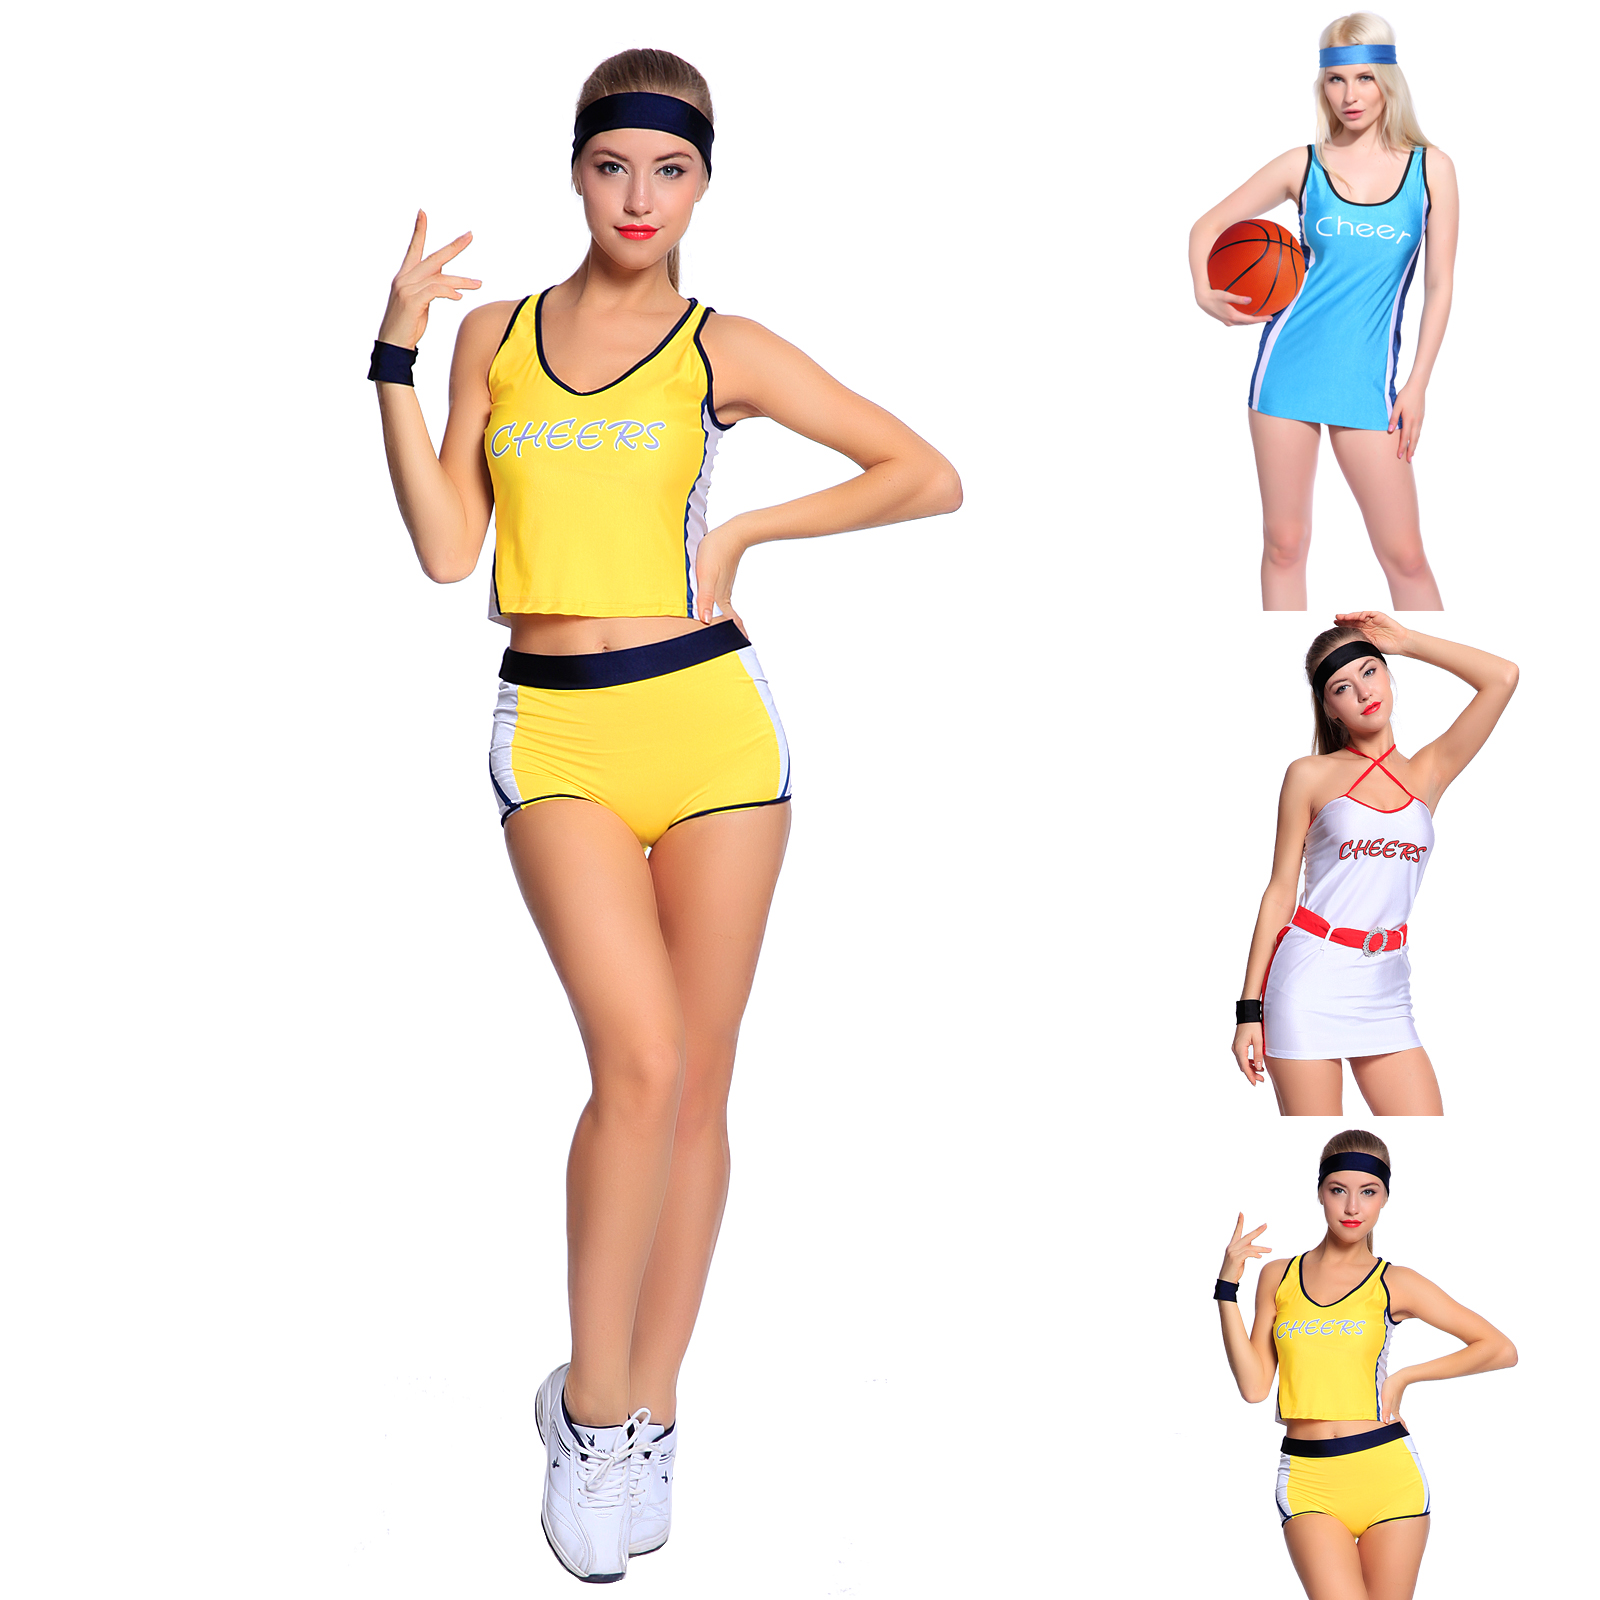 f689b663fa9 Details about Sexy High School Girl Basketball Player Outfit Cheerleader  Fancy Dress Costume